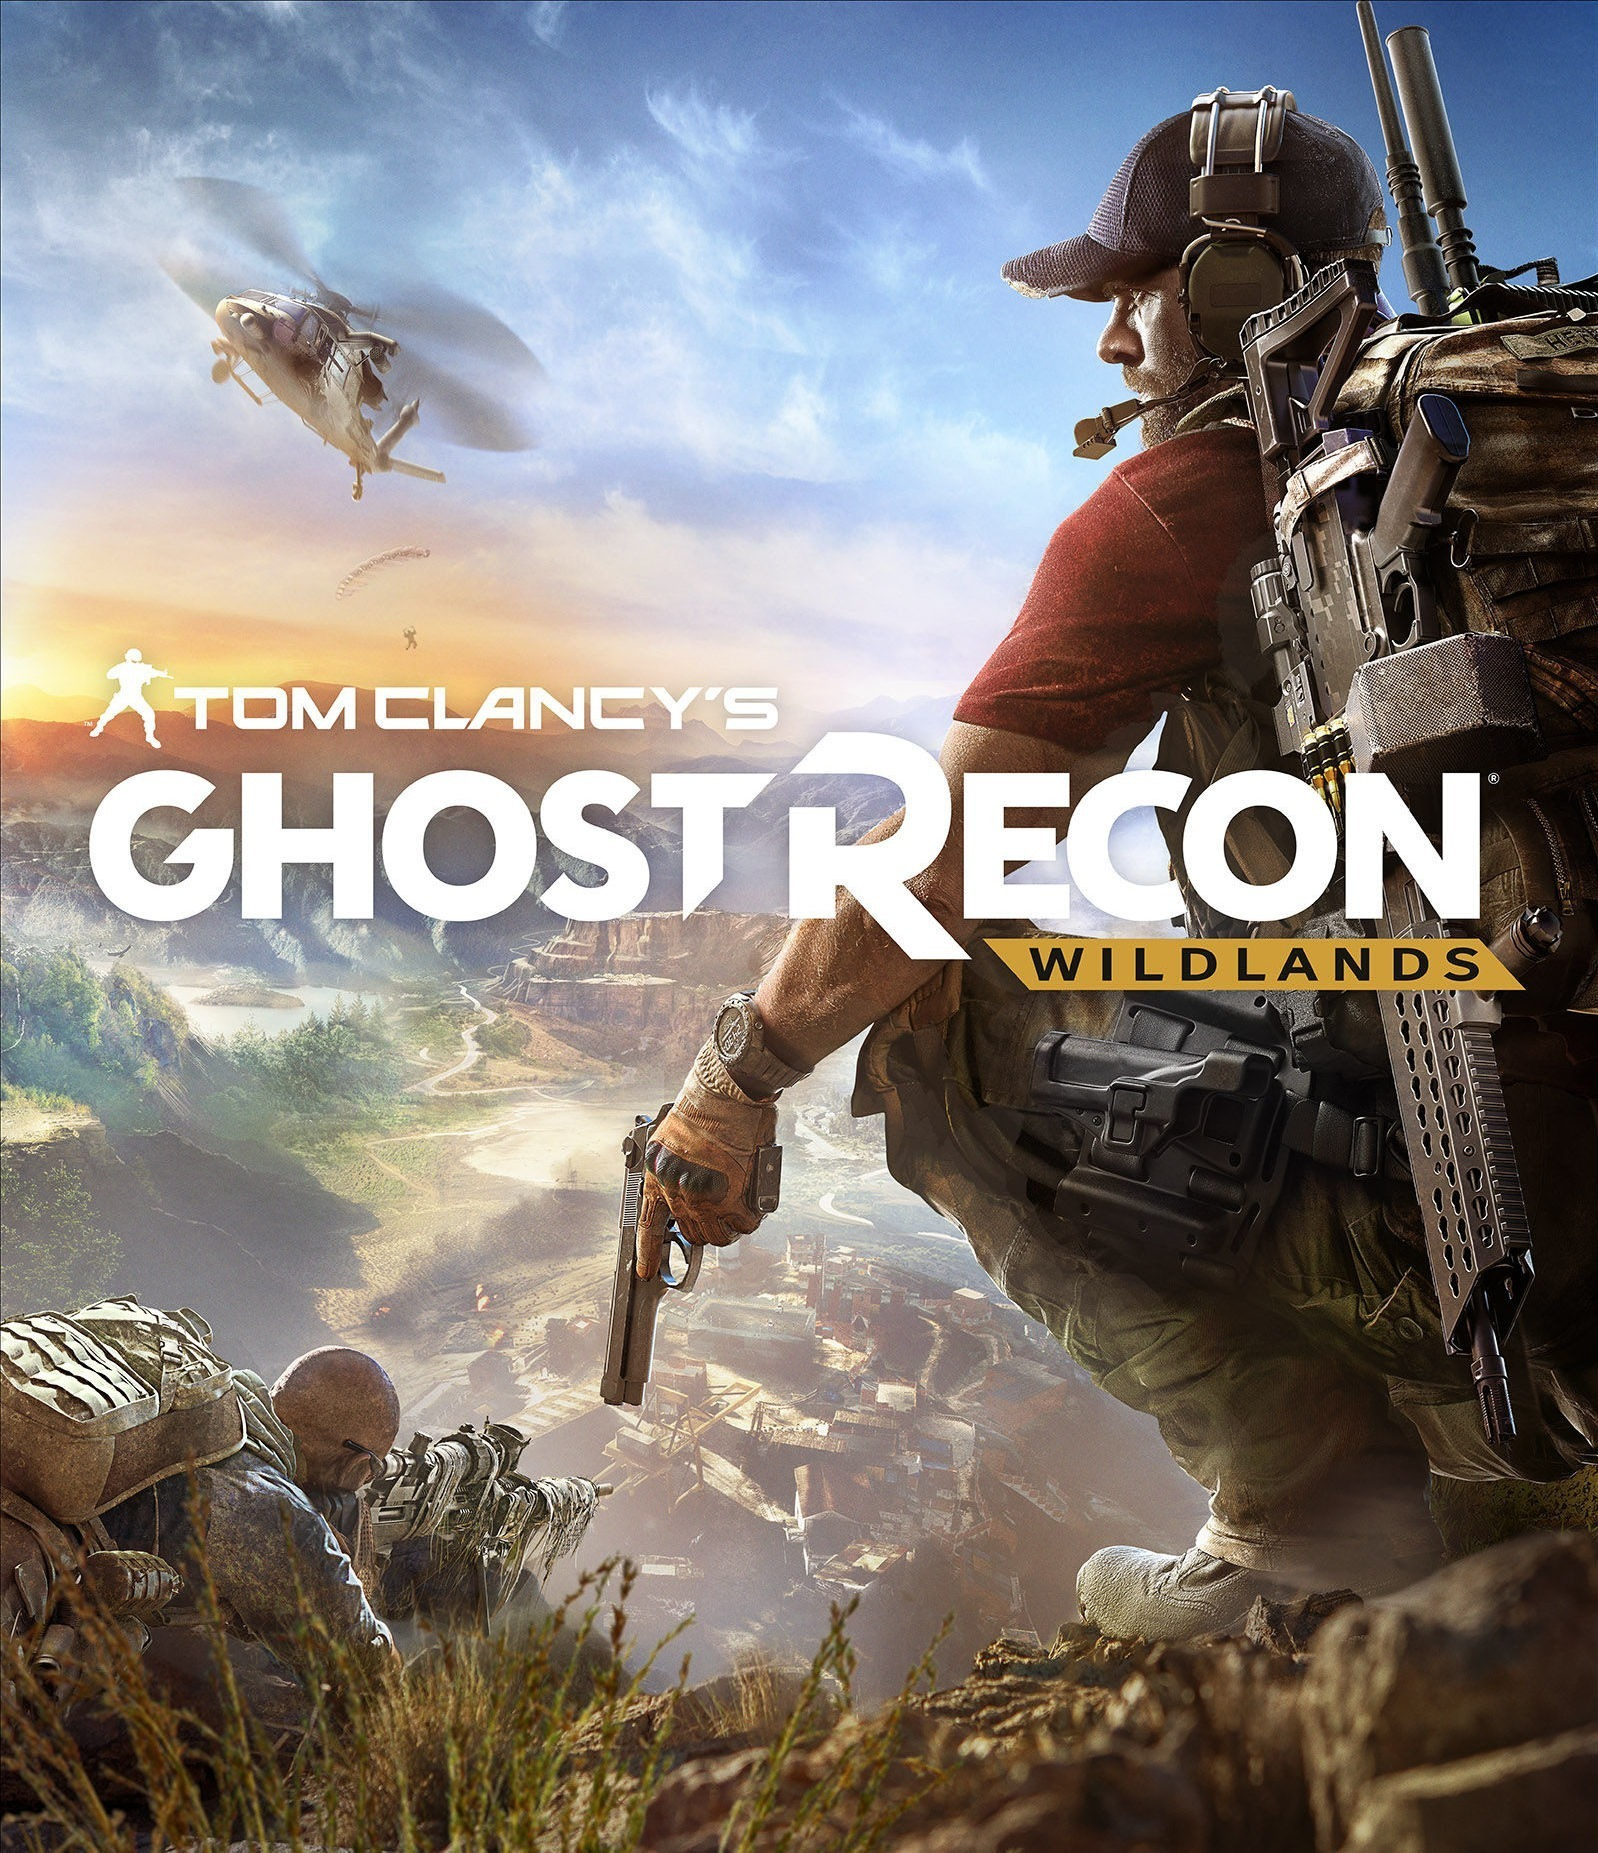 Tom Clancy's Ghost Recon Wildlands game